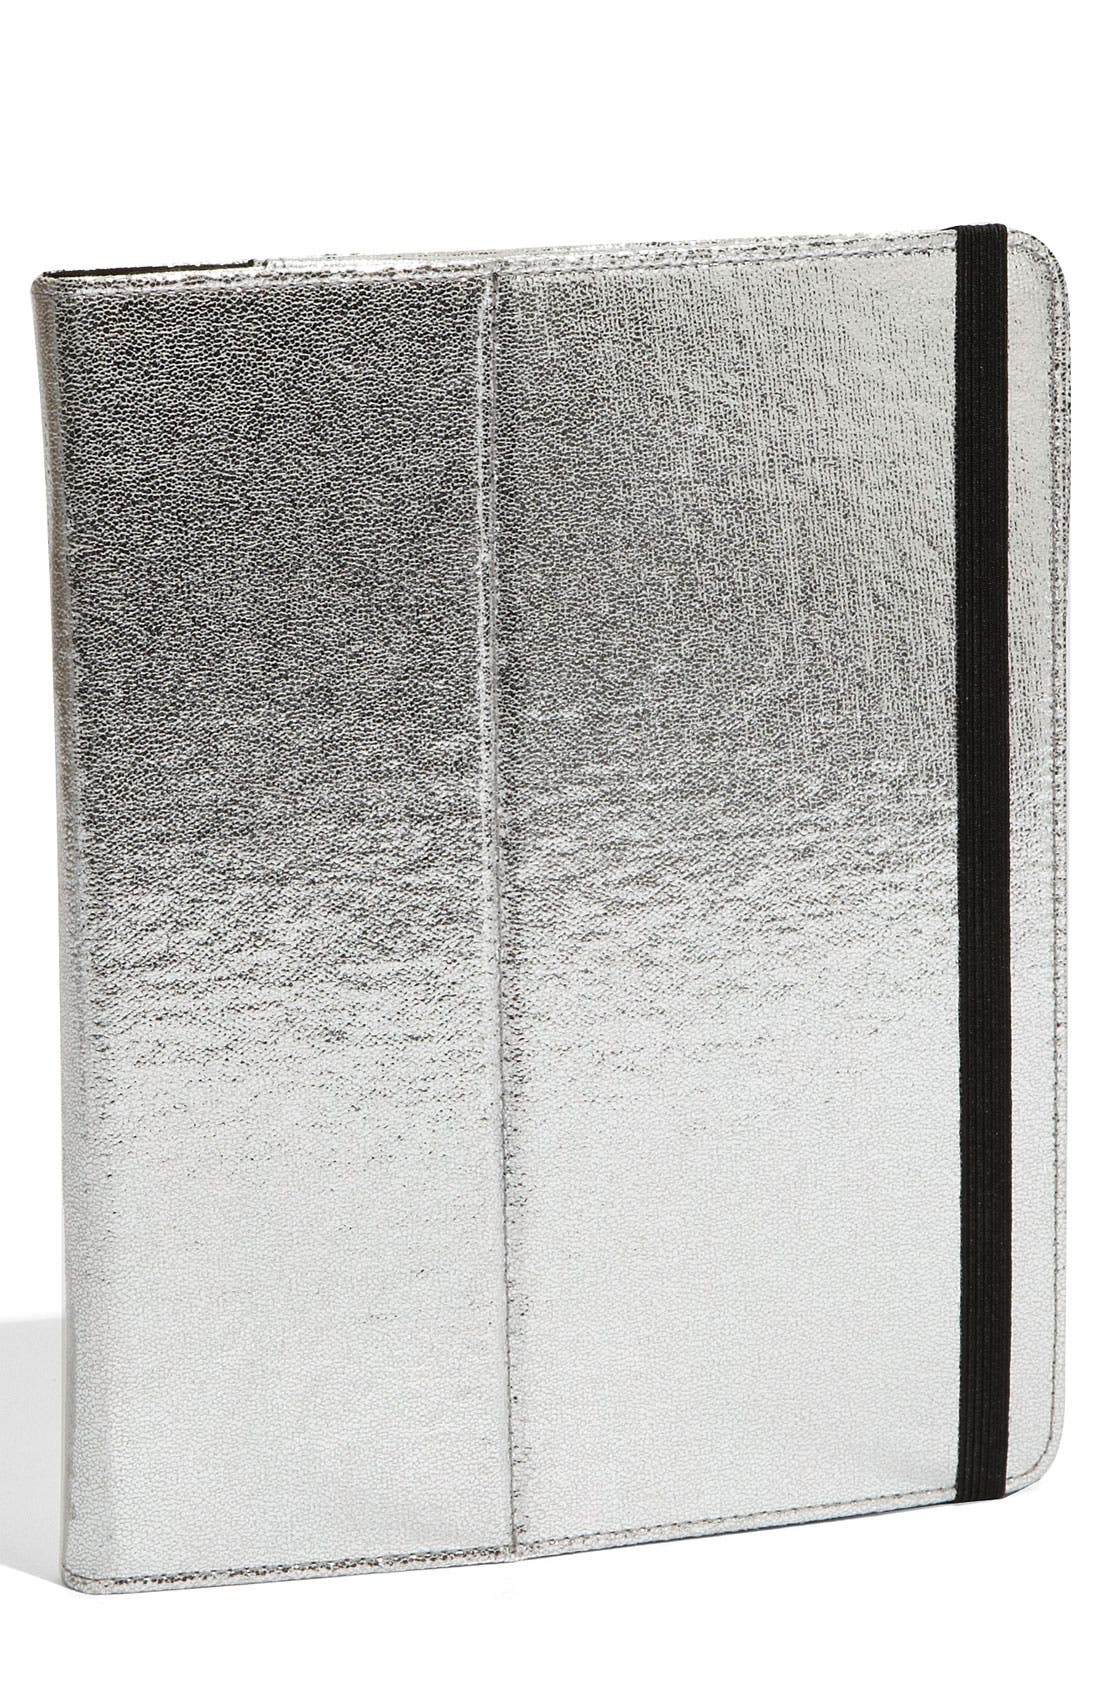 Main Image - Nordstrom 'Crackle' Metallic iPad Case